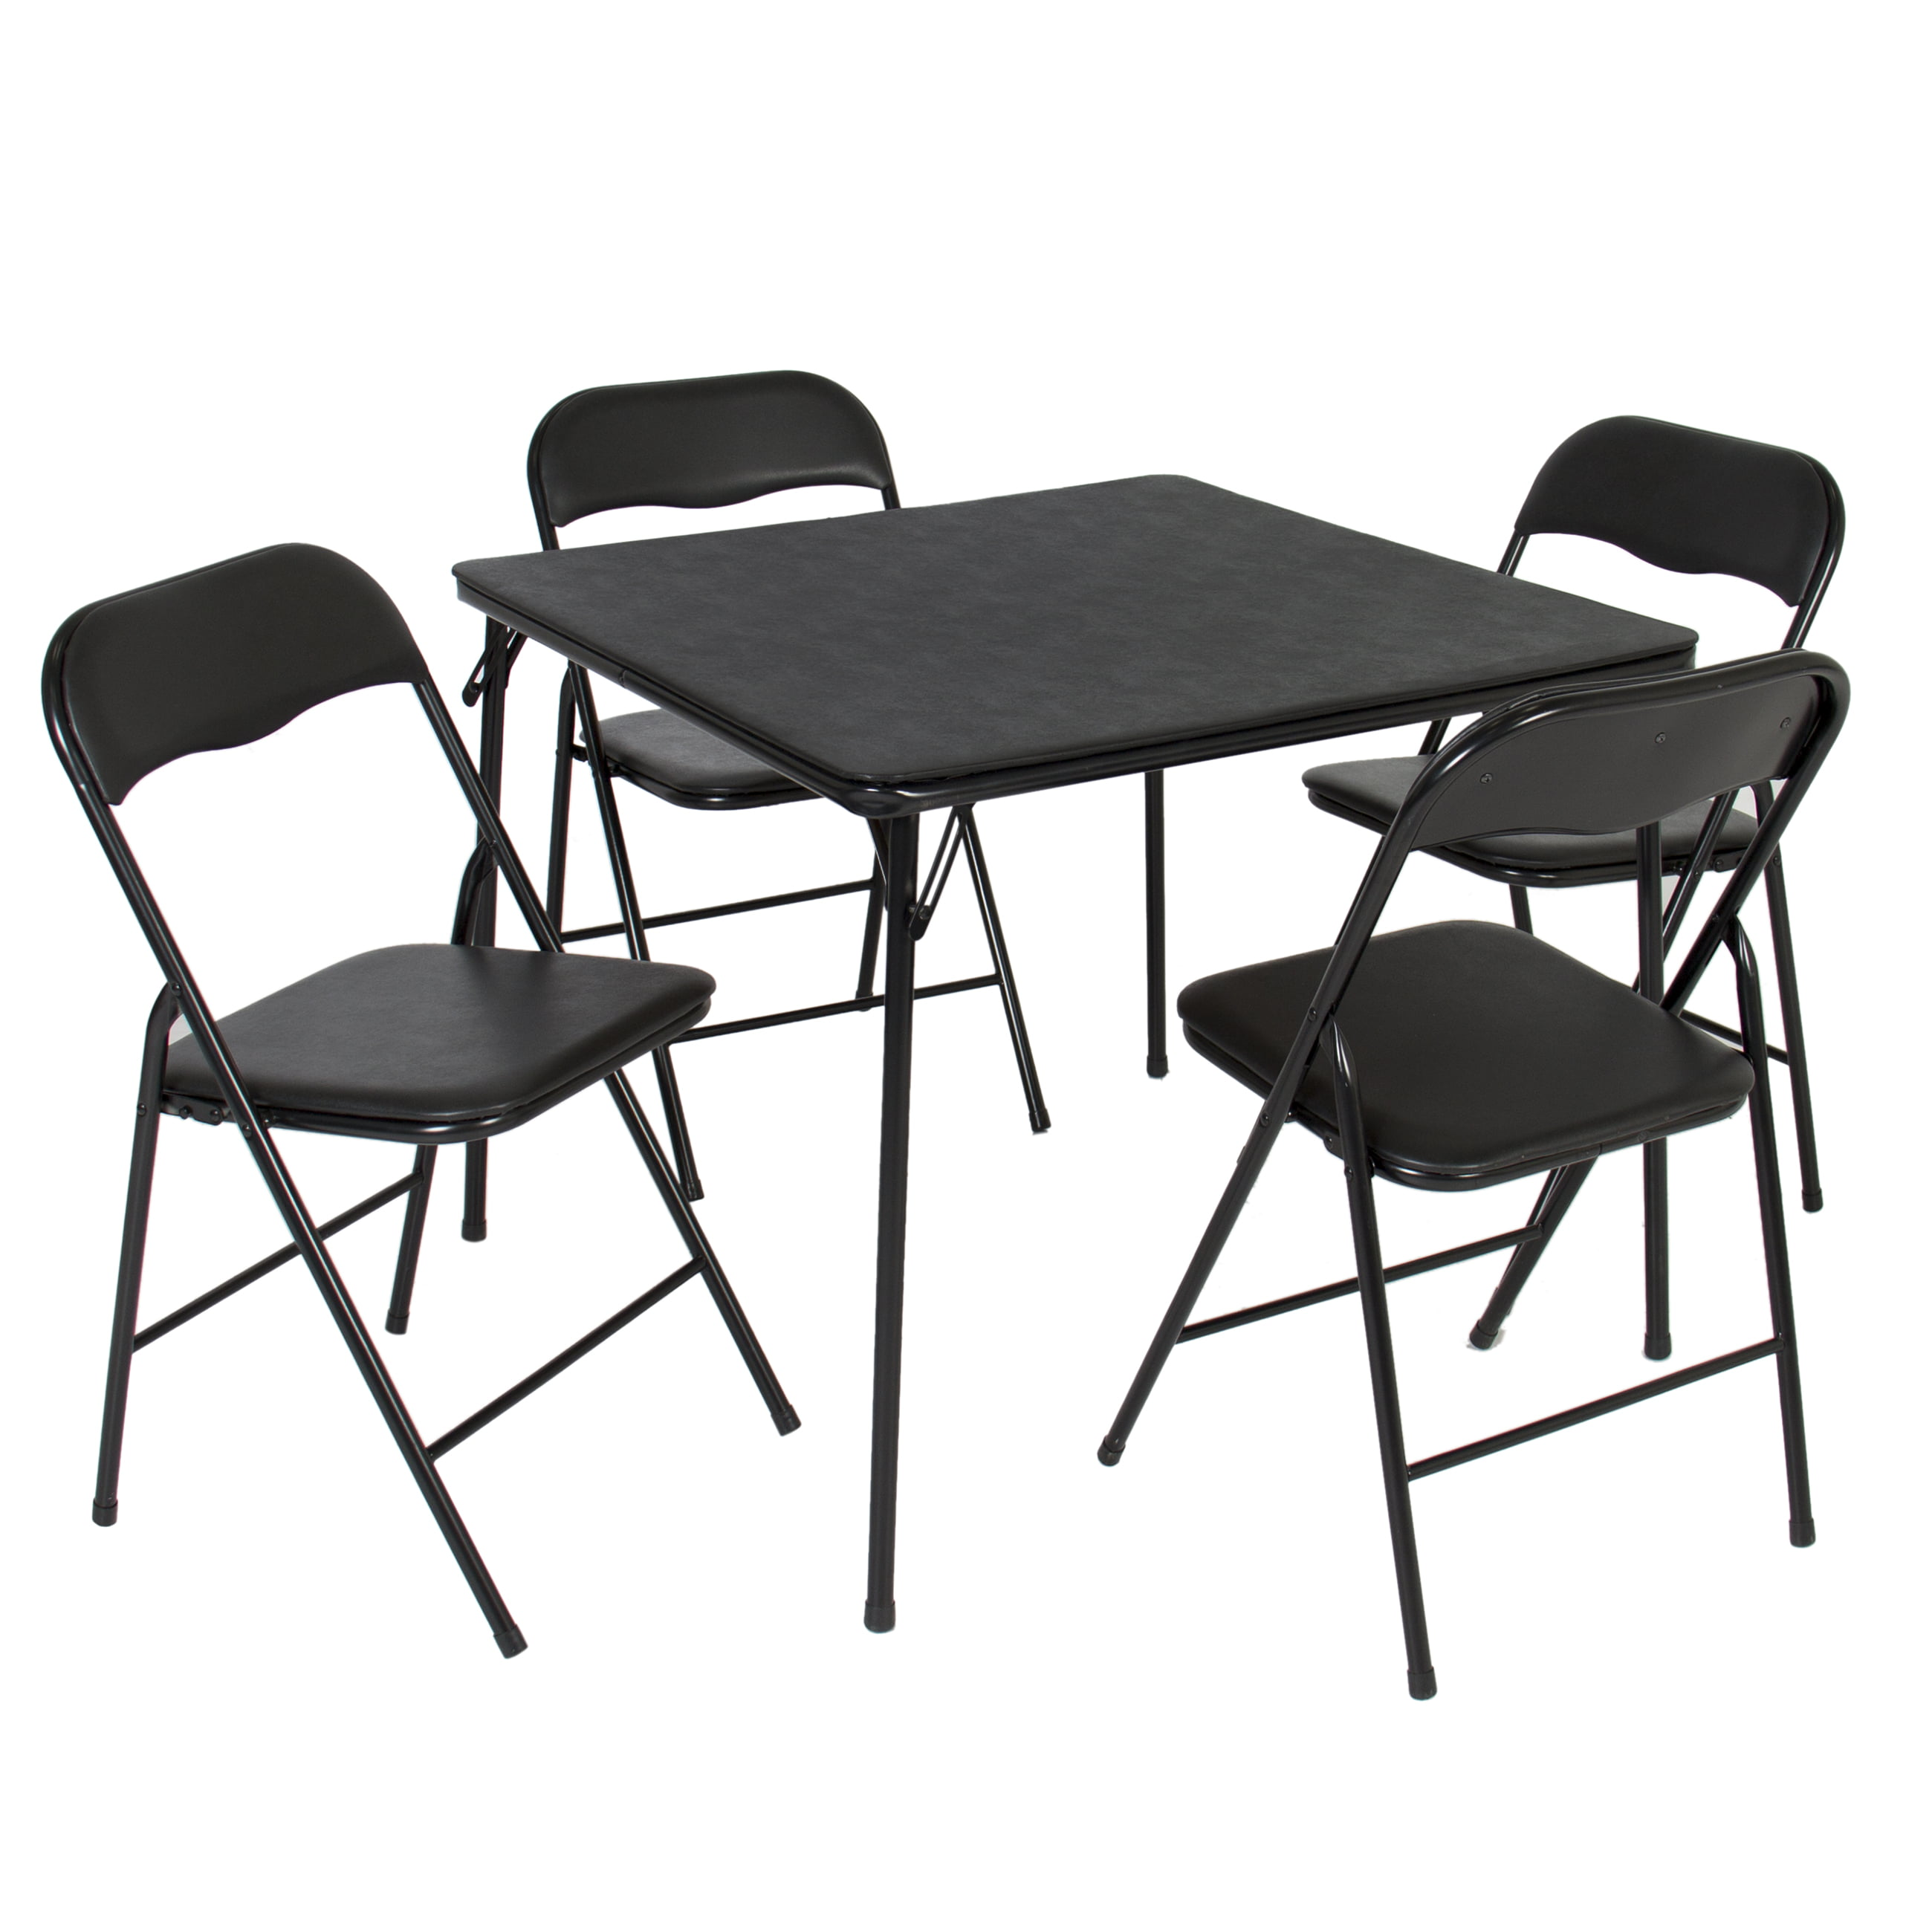 5PC Folding Table & Chairs Card Poker Game Parties Portable